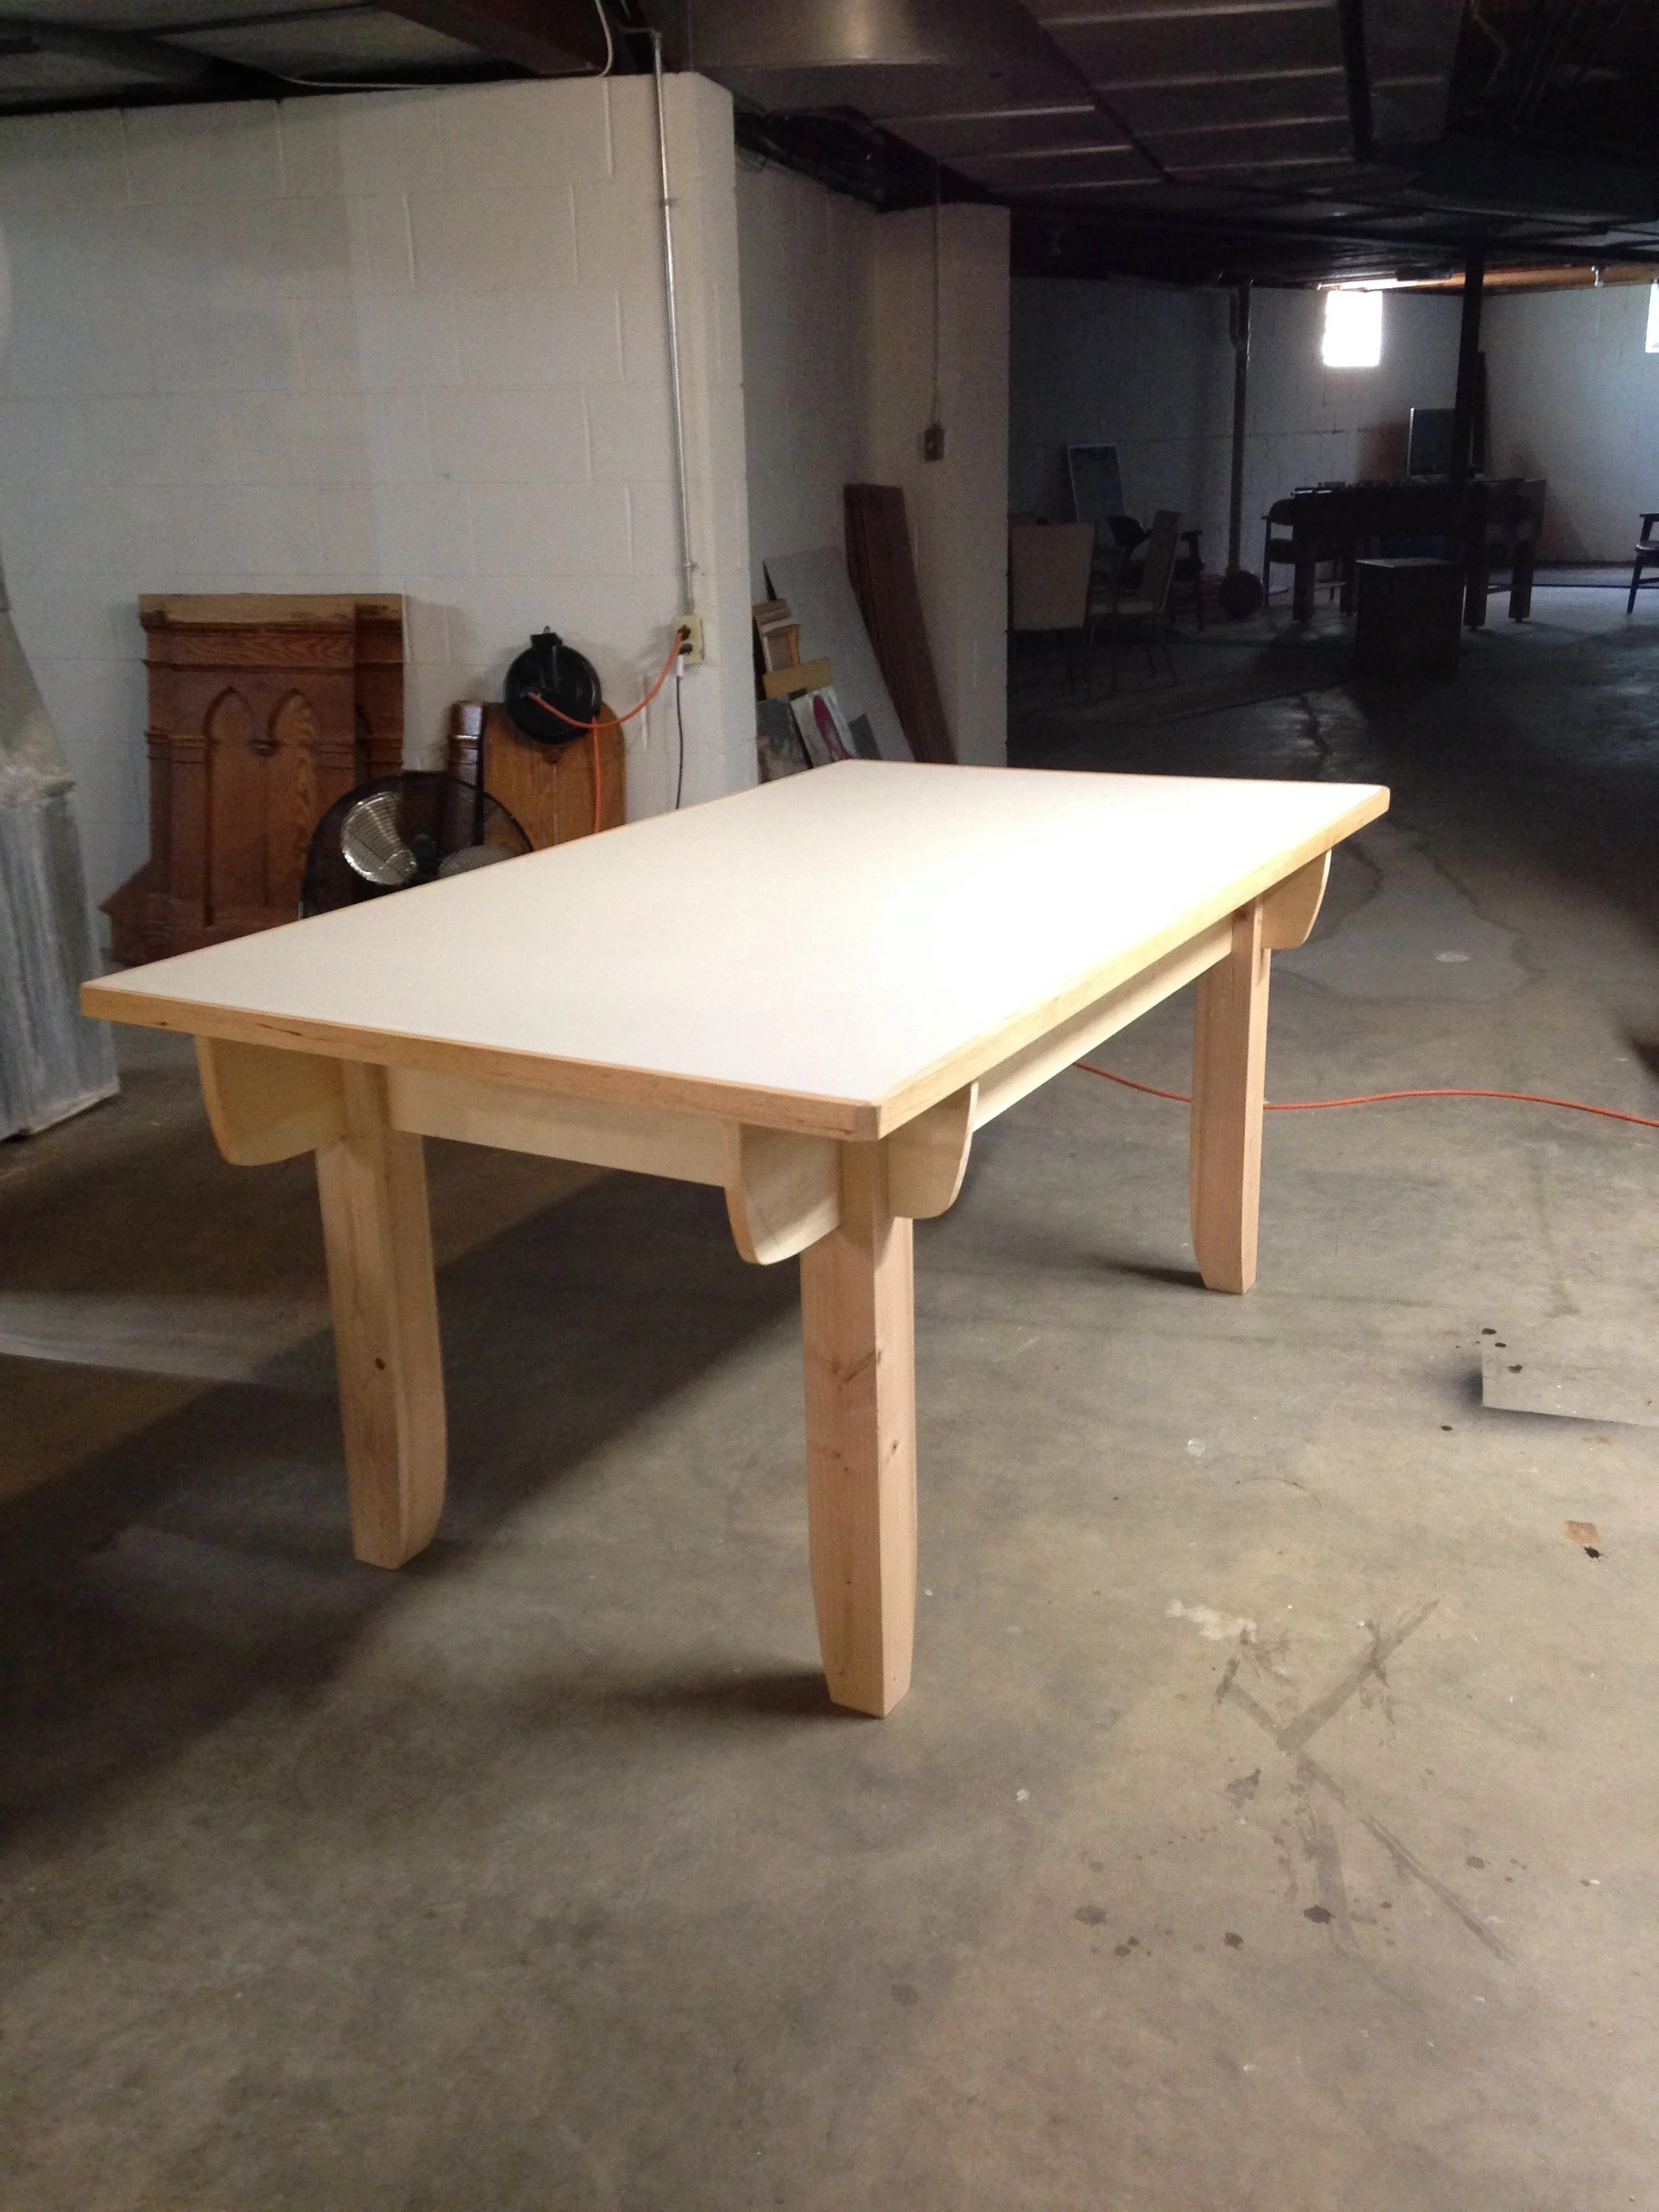 Assembly table with top installed.